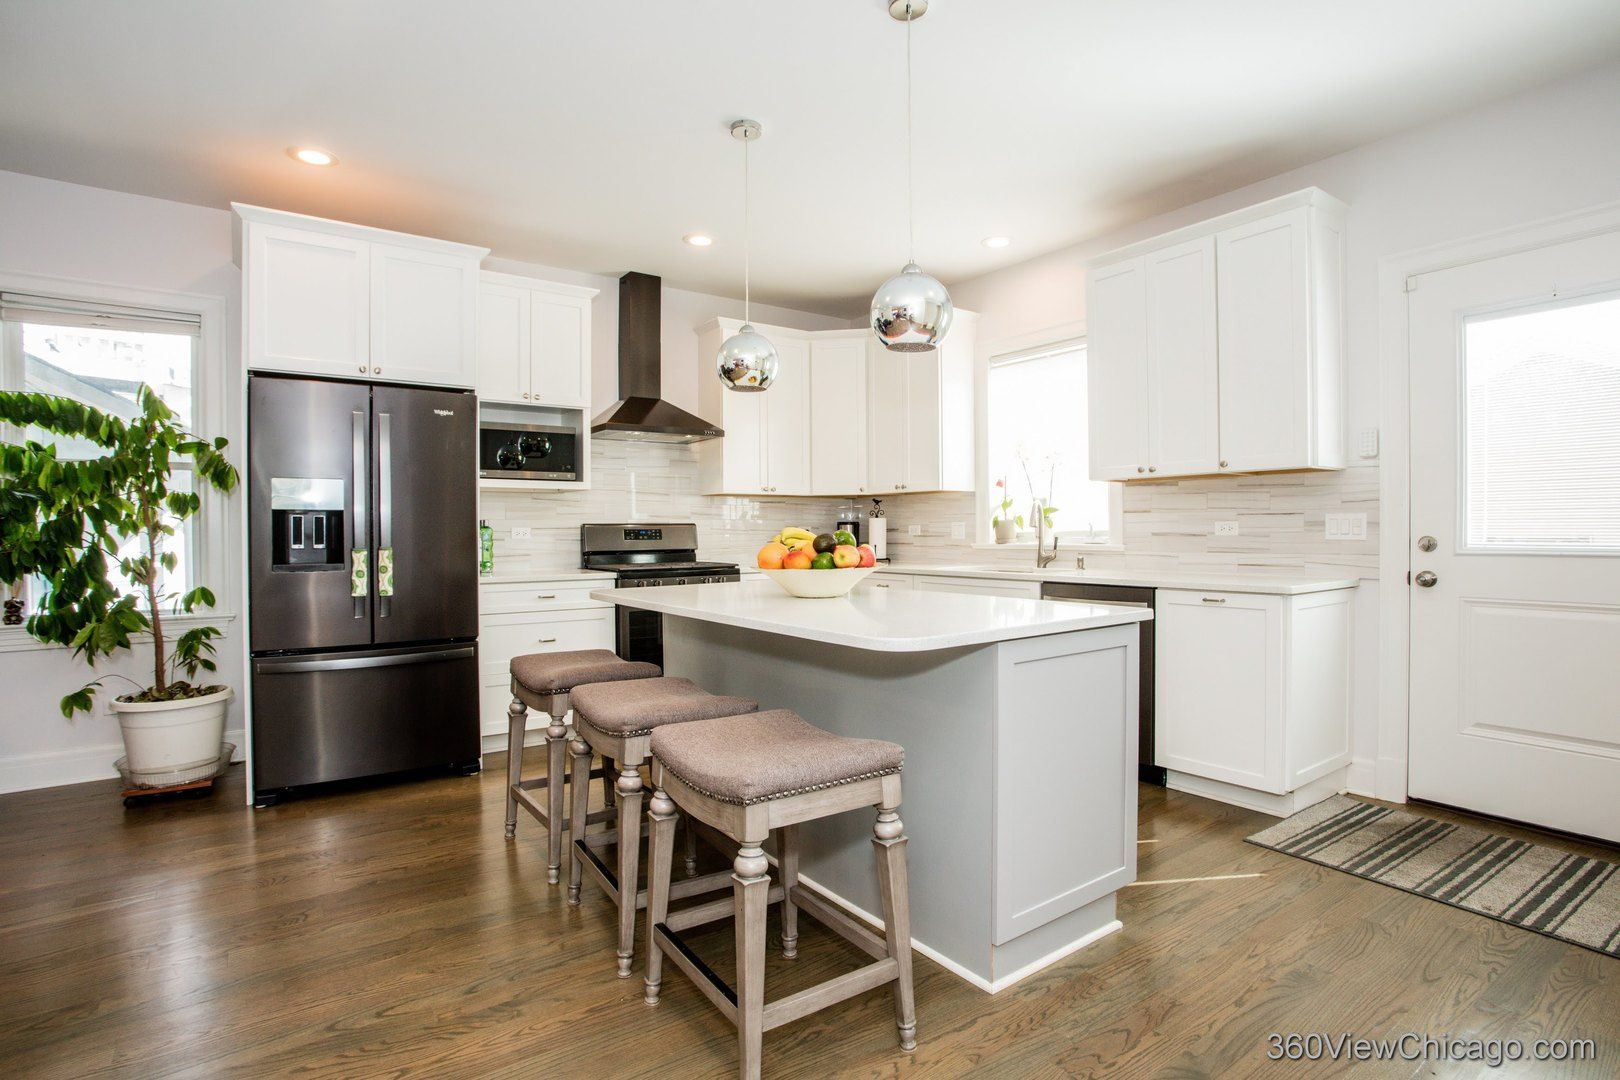 Photo 11: Photos: 1733 Troy Street in Chicago: CHI - Humboldt Park Residential for sale ()  : MLS®# 10911567